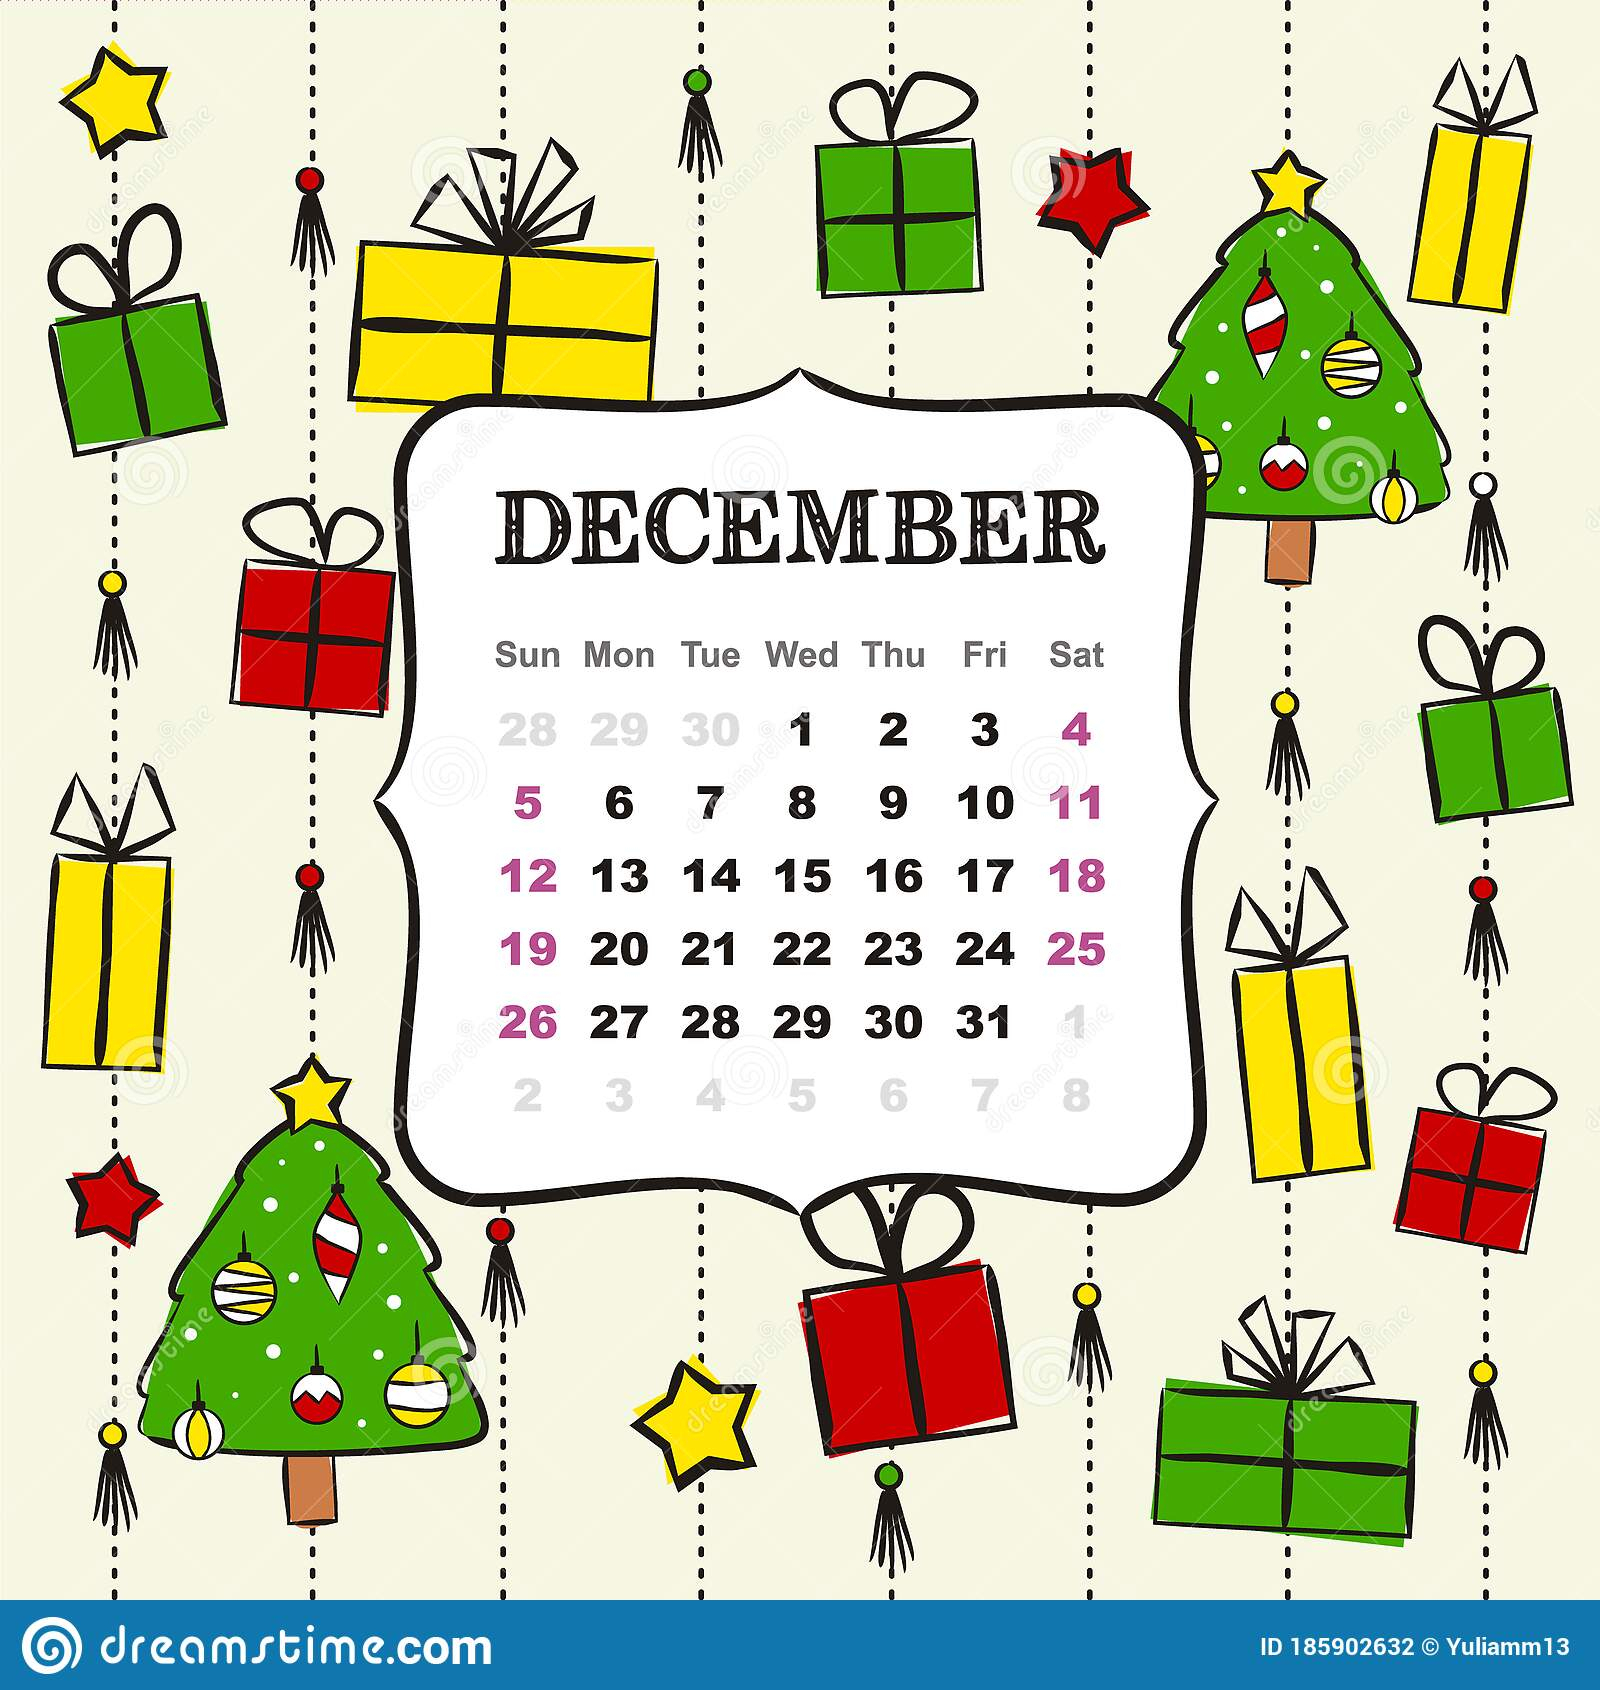 December 2021 Calendar Winter Theme